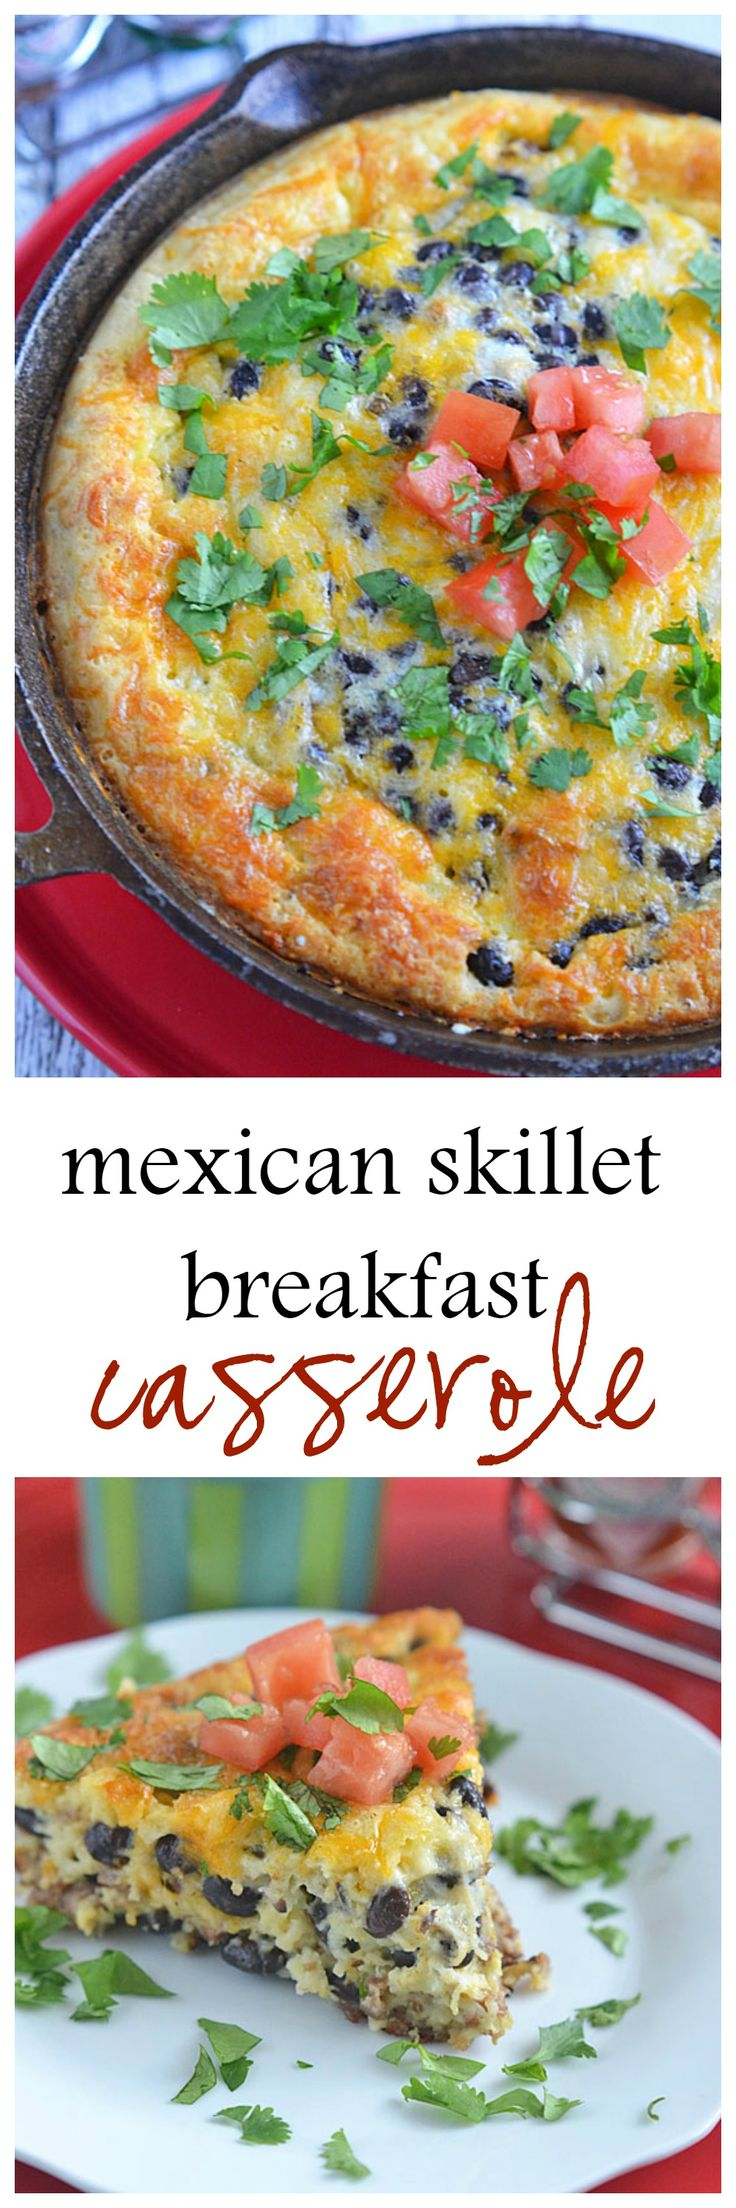 This Mexican Skillet Breakfast Casserole is sure to satisfy hungry family and friends. Filled with sausage, cheese and veggies, this hearty breakfast can be prepared the night before, making busy mornings stress-free!